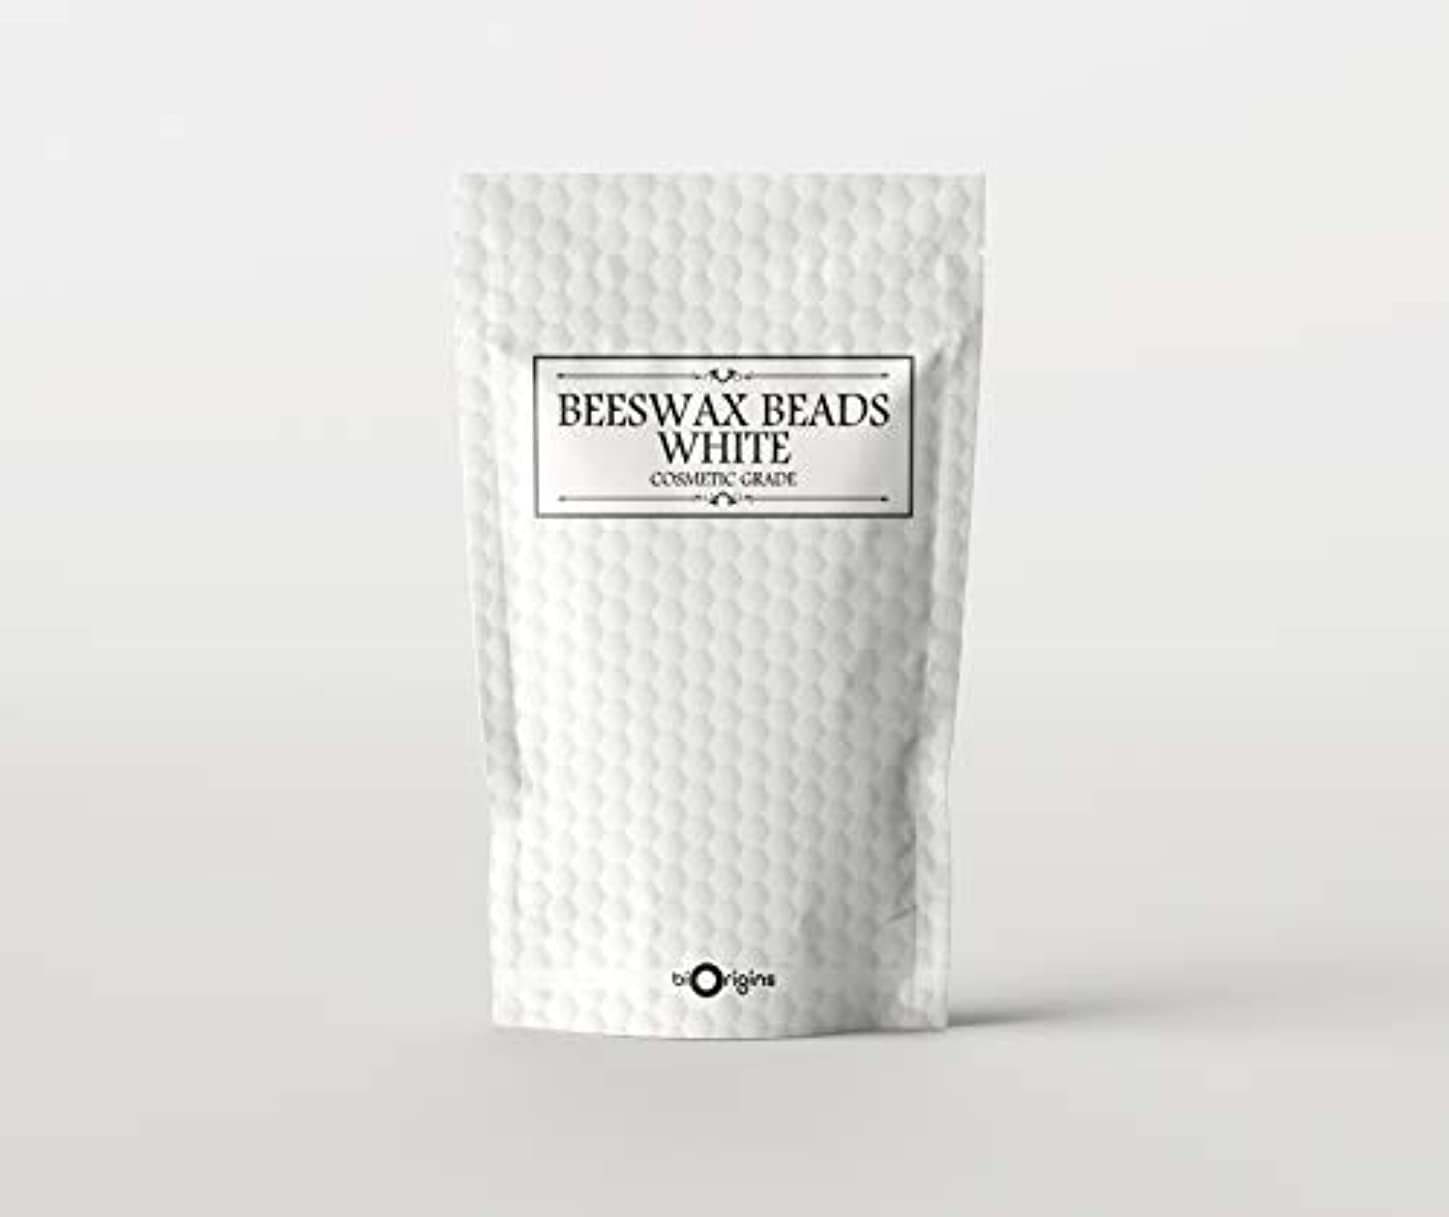 実行する偏差市町村Beeswax Beads White - Cosmetic Grade - 500g